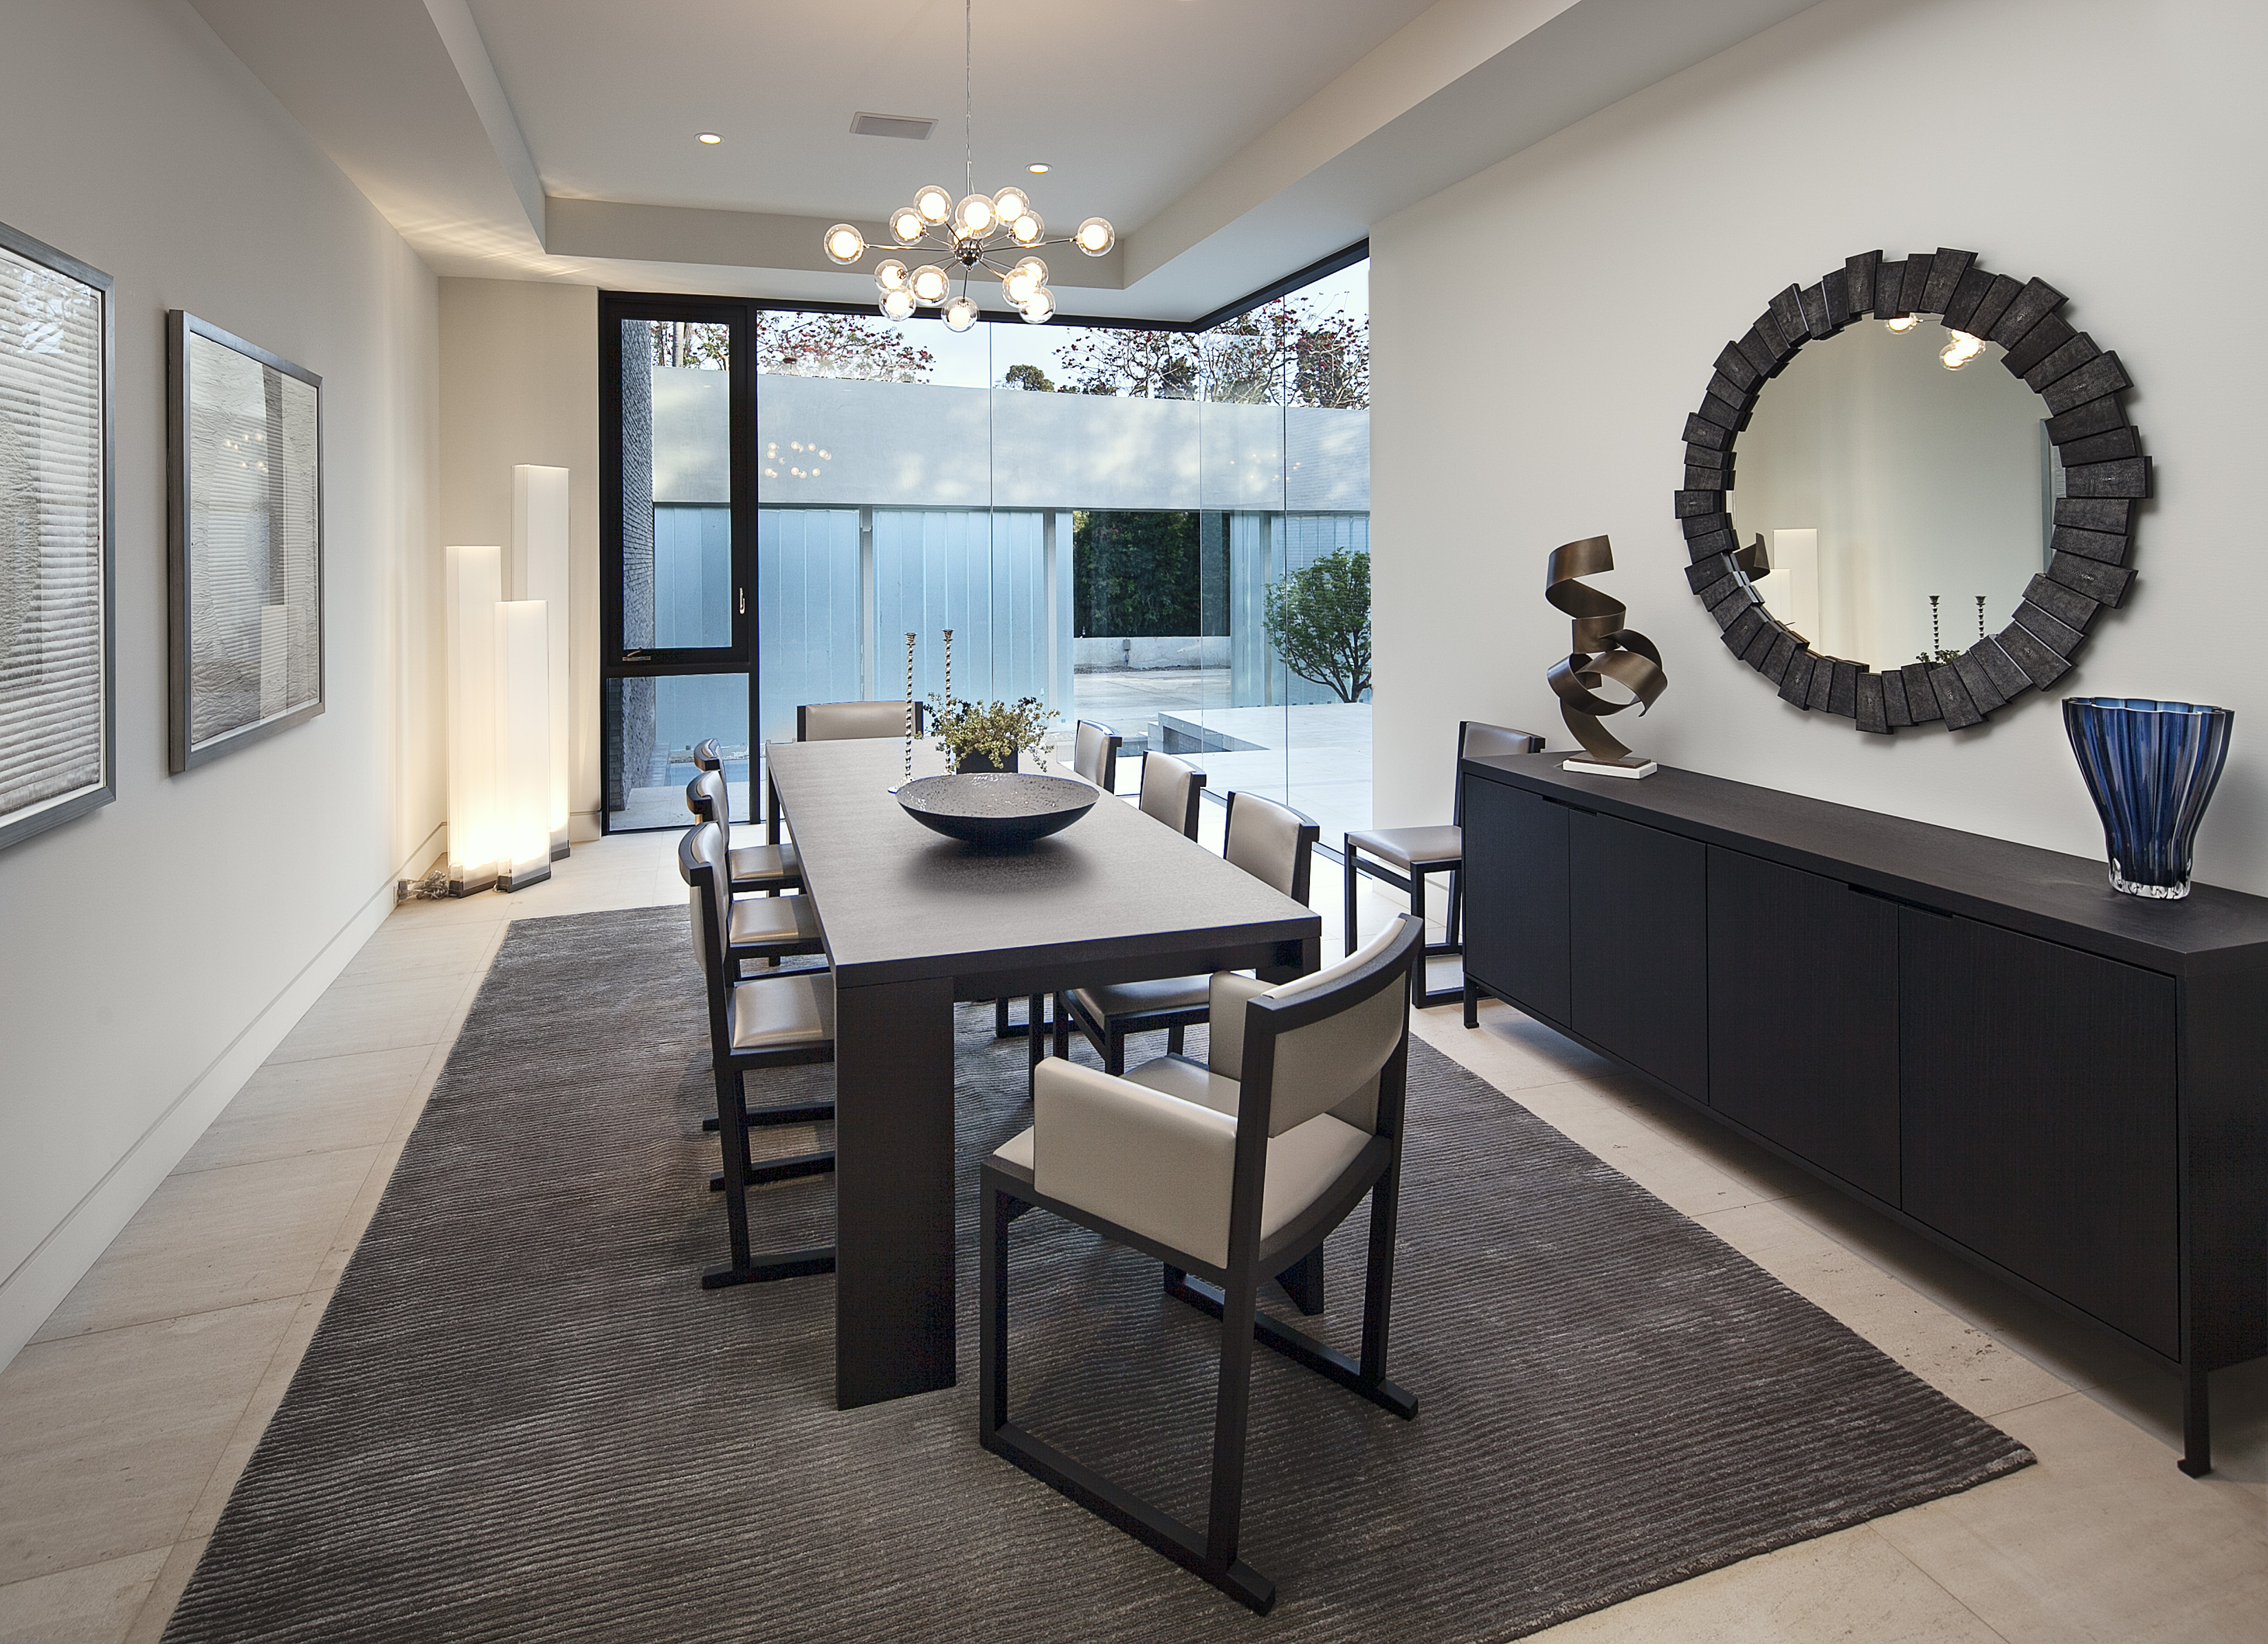 Formal dining room features elegant, lengthy dark wood table with matching cabinetry, unique art pieces scattered throughout, and pristine view toward the front courtyard.